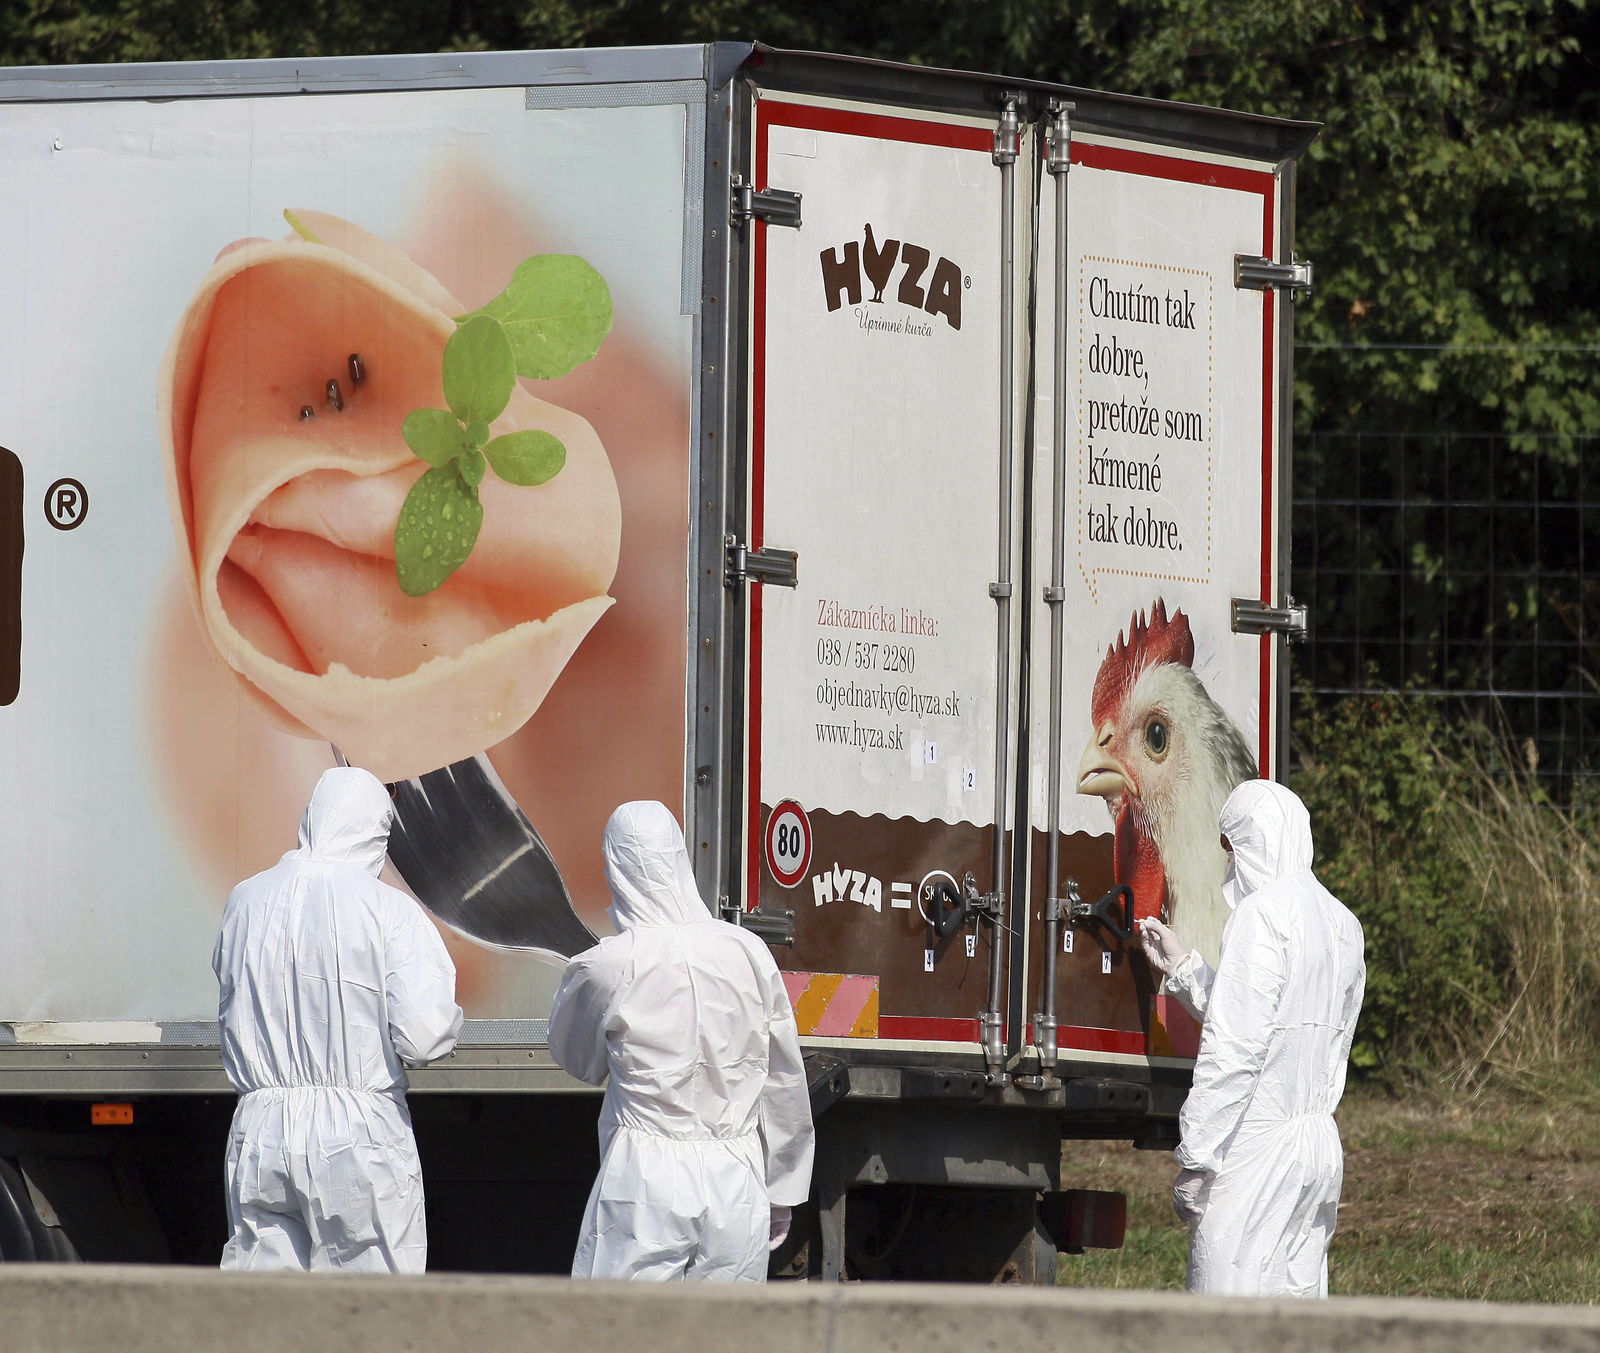 FILE - In this Thursday, Aug. 27, 2015 file photo, investigators stand near an abandoned truck on the shoulder of Highway A4 near Parndorf, Austria, south of Vienna. (AP Photo/Ronald Zak, file)